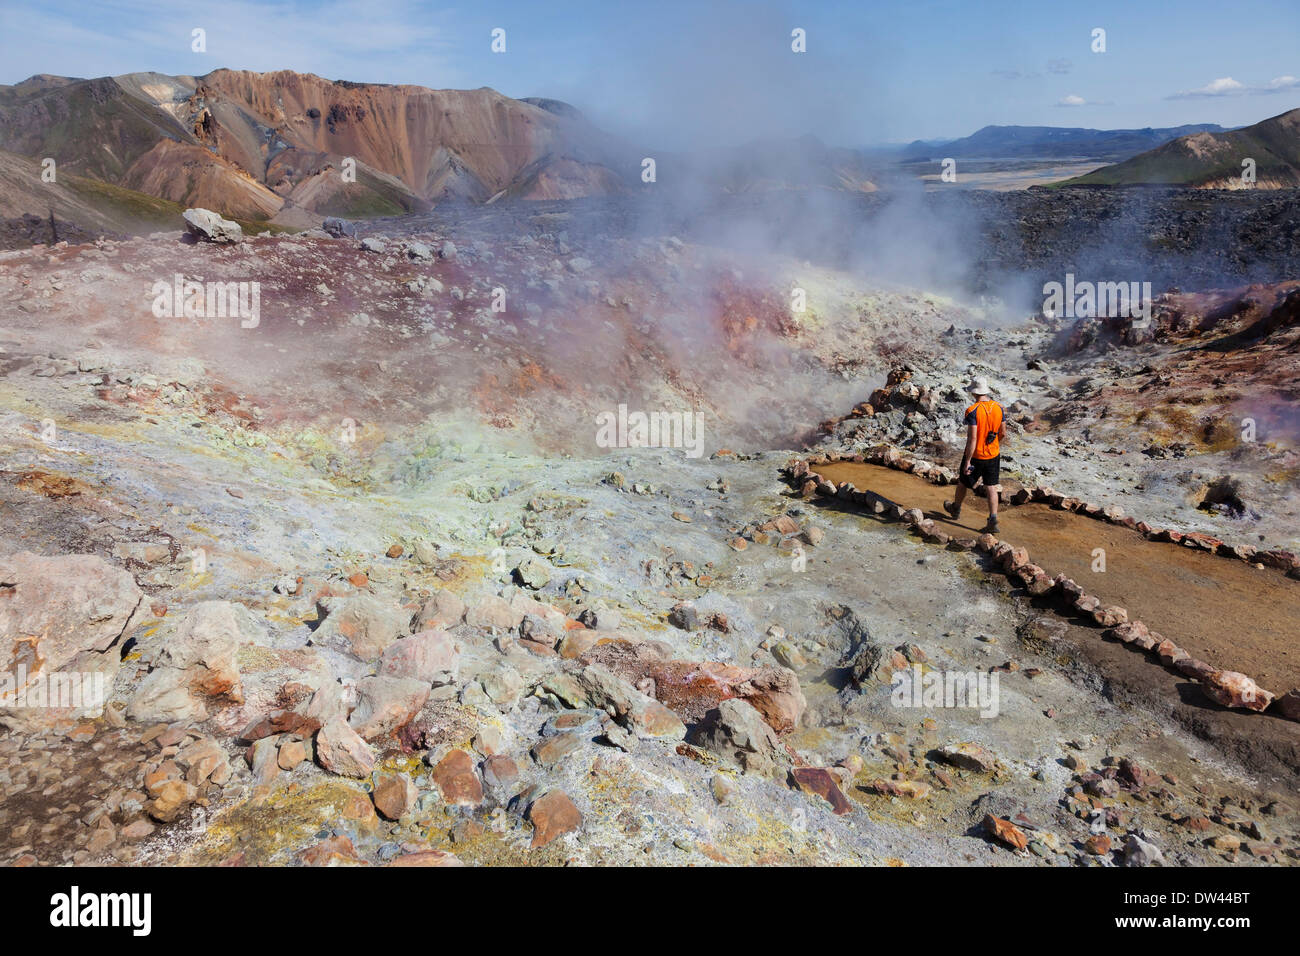 Hiker on the Laugavegur Hiking Trail Examining an Active Geothermal Area on the Slopes of the Brennisteinsalda Volcano Iceland - Stock Image